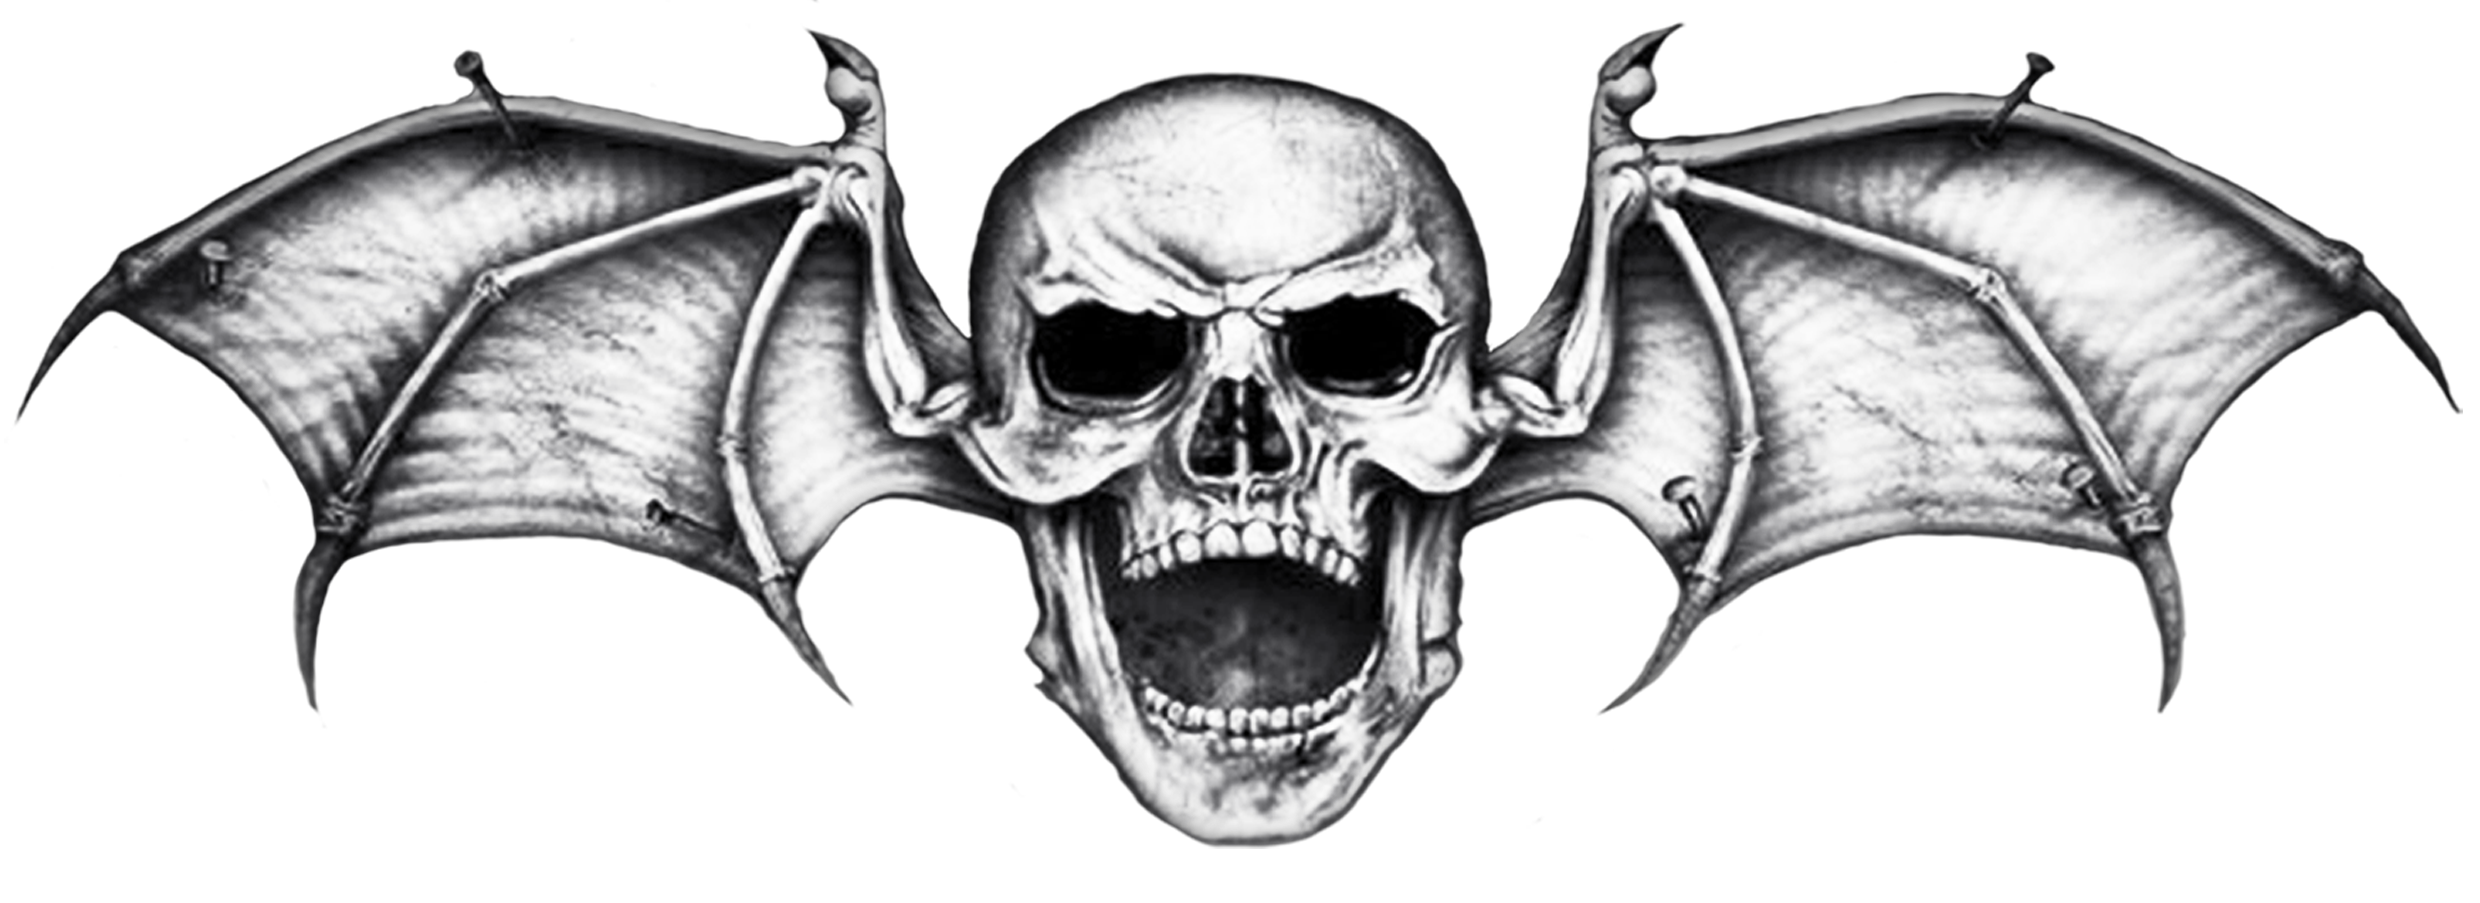 Deathbat A7X by AndRizky on DeviantArt - Avenged Sevenfold PNG